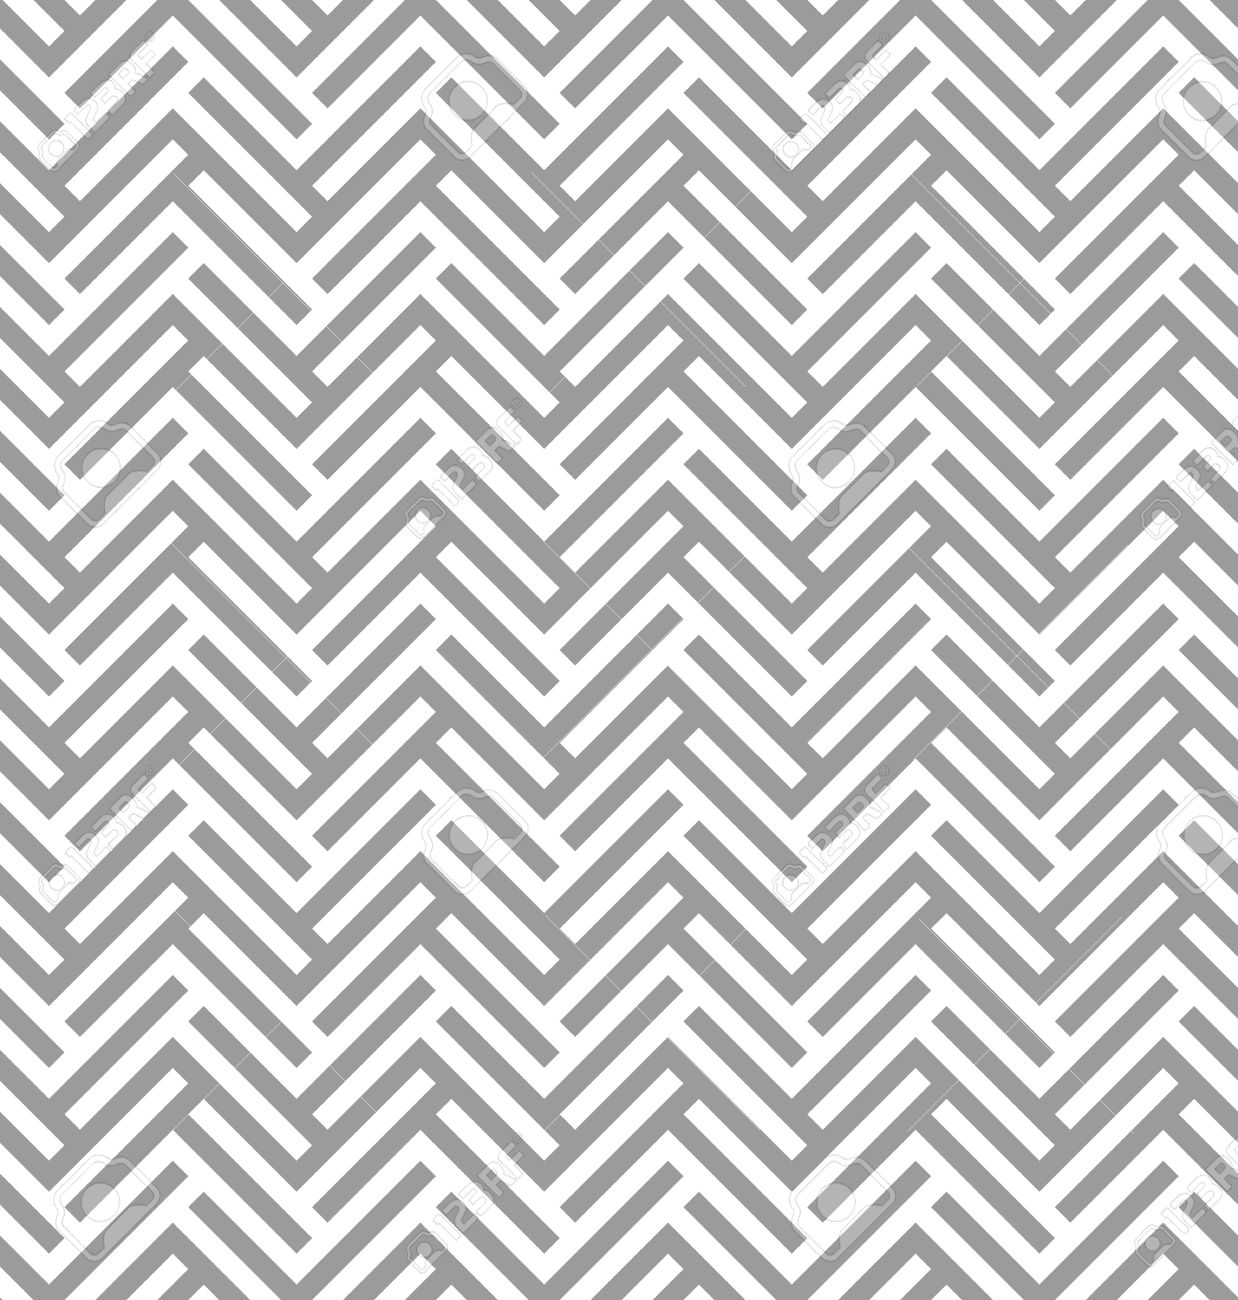 Modern Simple Geometric Fabric Texture With Repeating Parquet ... for Fabric Texture Pattern Modern  585ifm